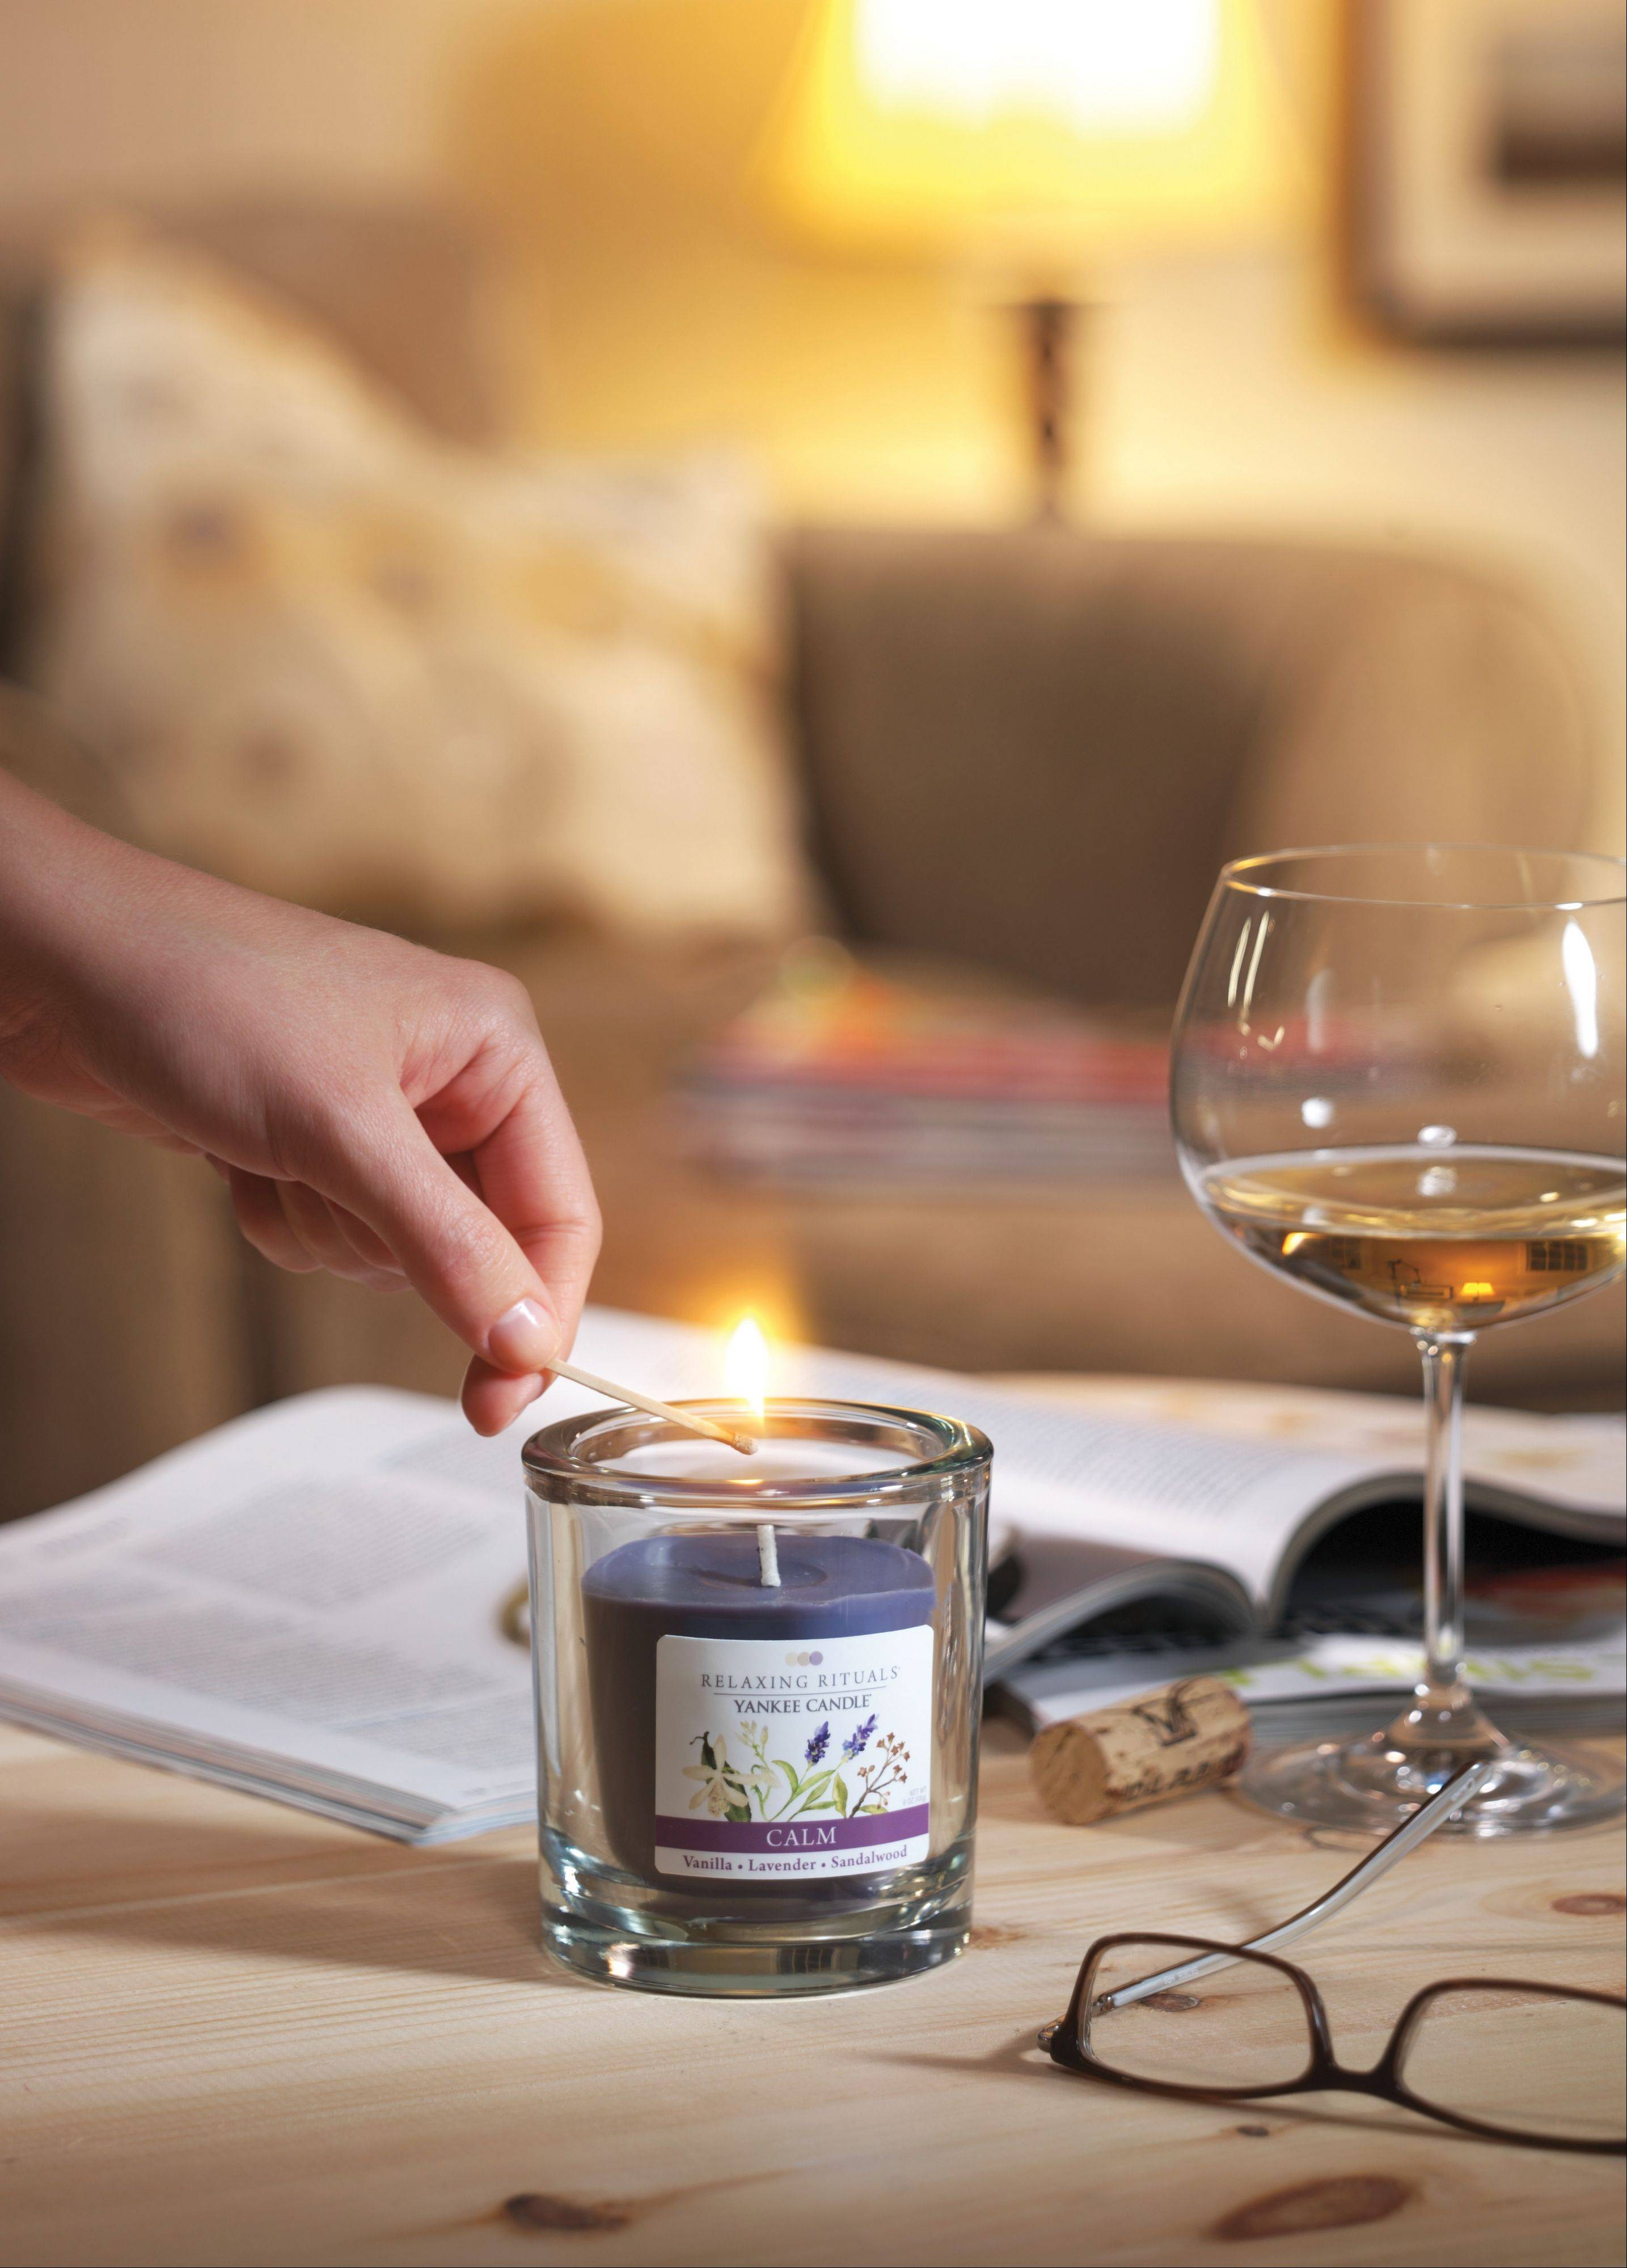 Home fragrancing products also help transform a room. Candles can turn your bath into a calming retreat, or create a holiday atmosphere in your kitchen.